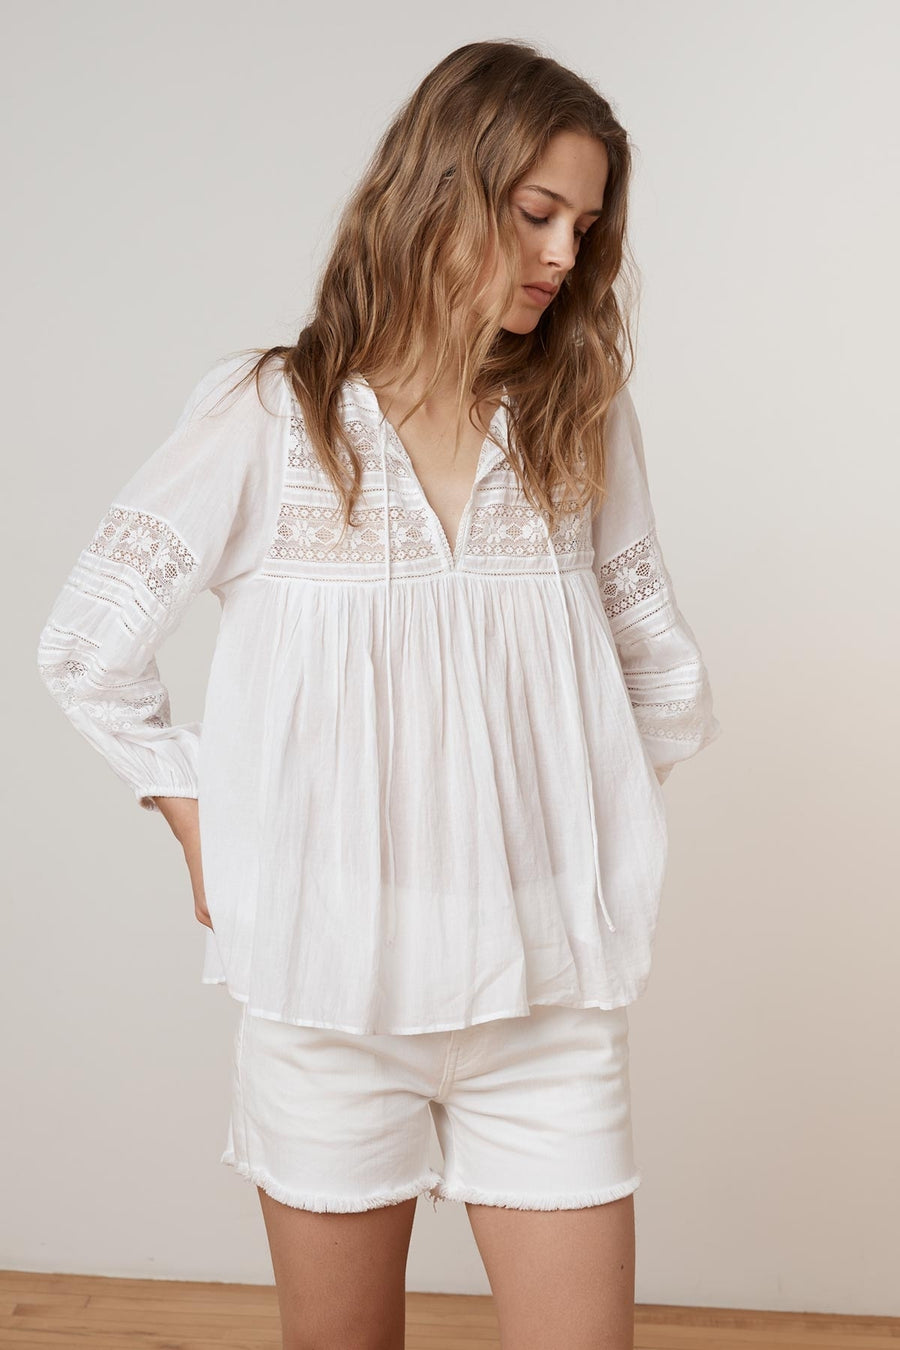 VELVET EVIE COTTON LACE PEASANT TOP